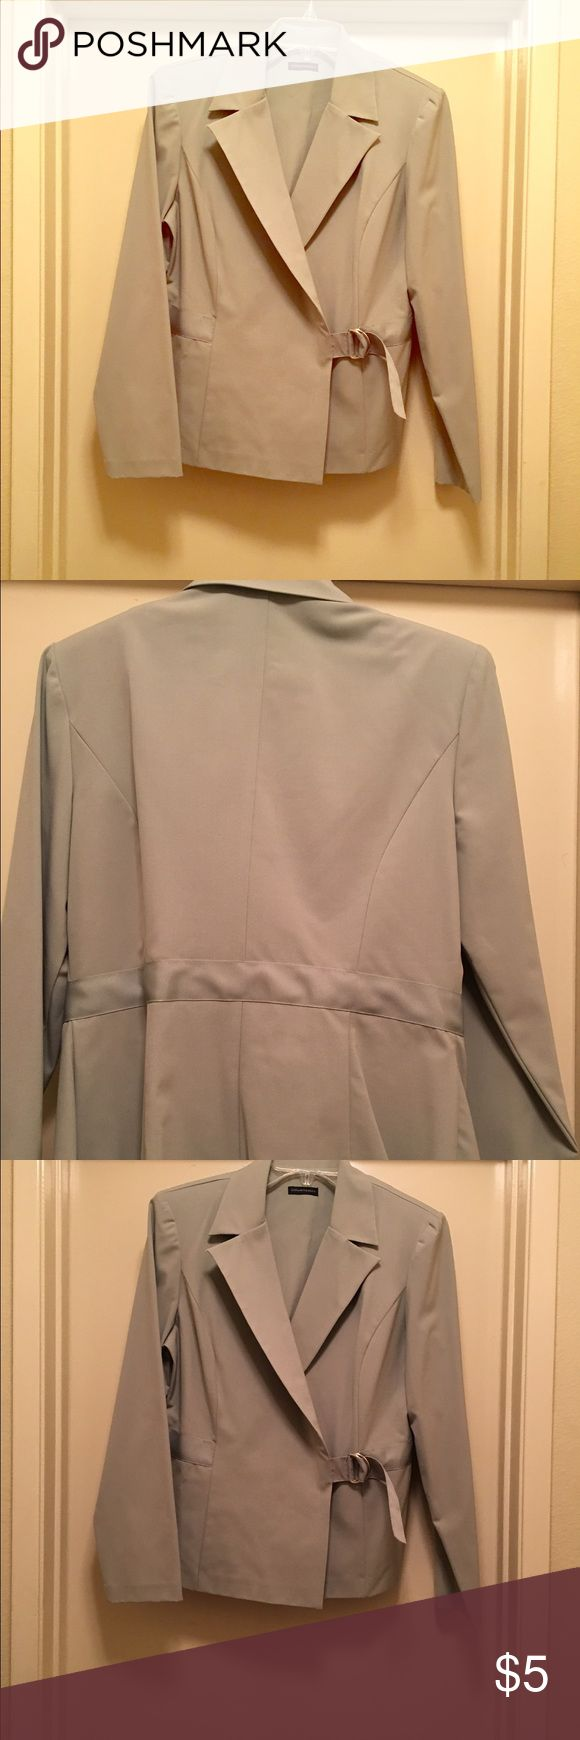 Gray casual suit jacket.  Great condition! Excellent gray casual suit jacket.  Real cute! Like new. 🍃 made of 62% polyester 34% viscose 4% spandex. courtenay Jackets & Coats Blazers